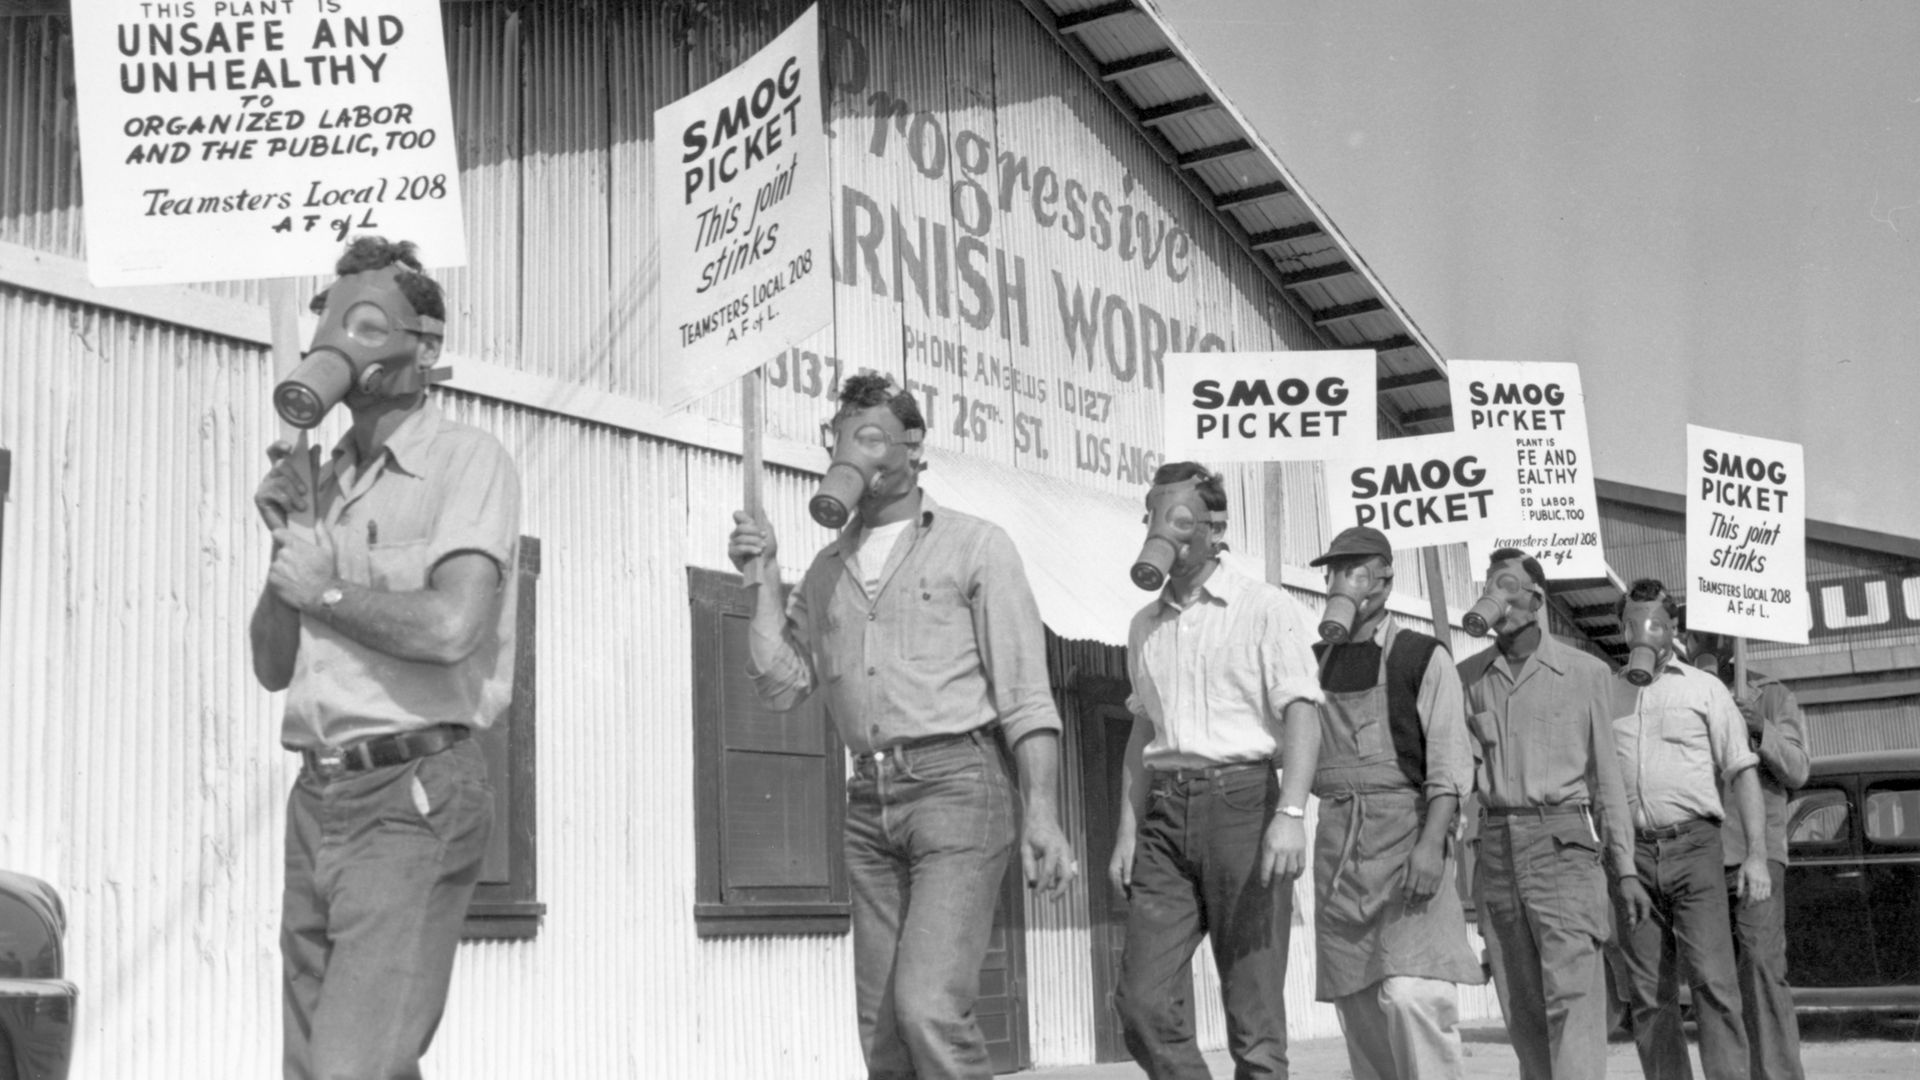 """Protesters complain about the stench from a Los Angeles varnish factory in 1949. Their slogan was """"this joint stinks!"""" - Credit: Bettmann Archive"""